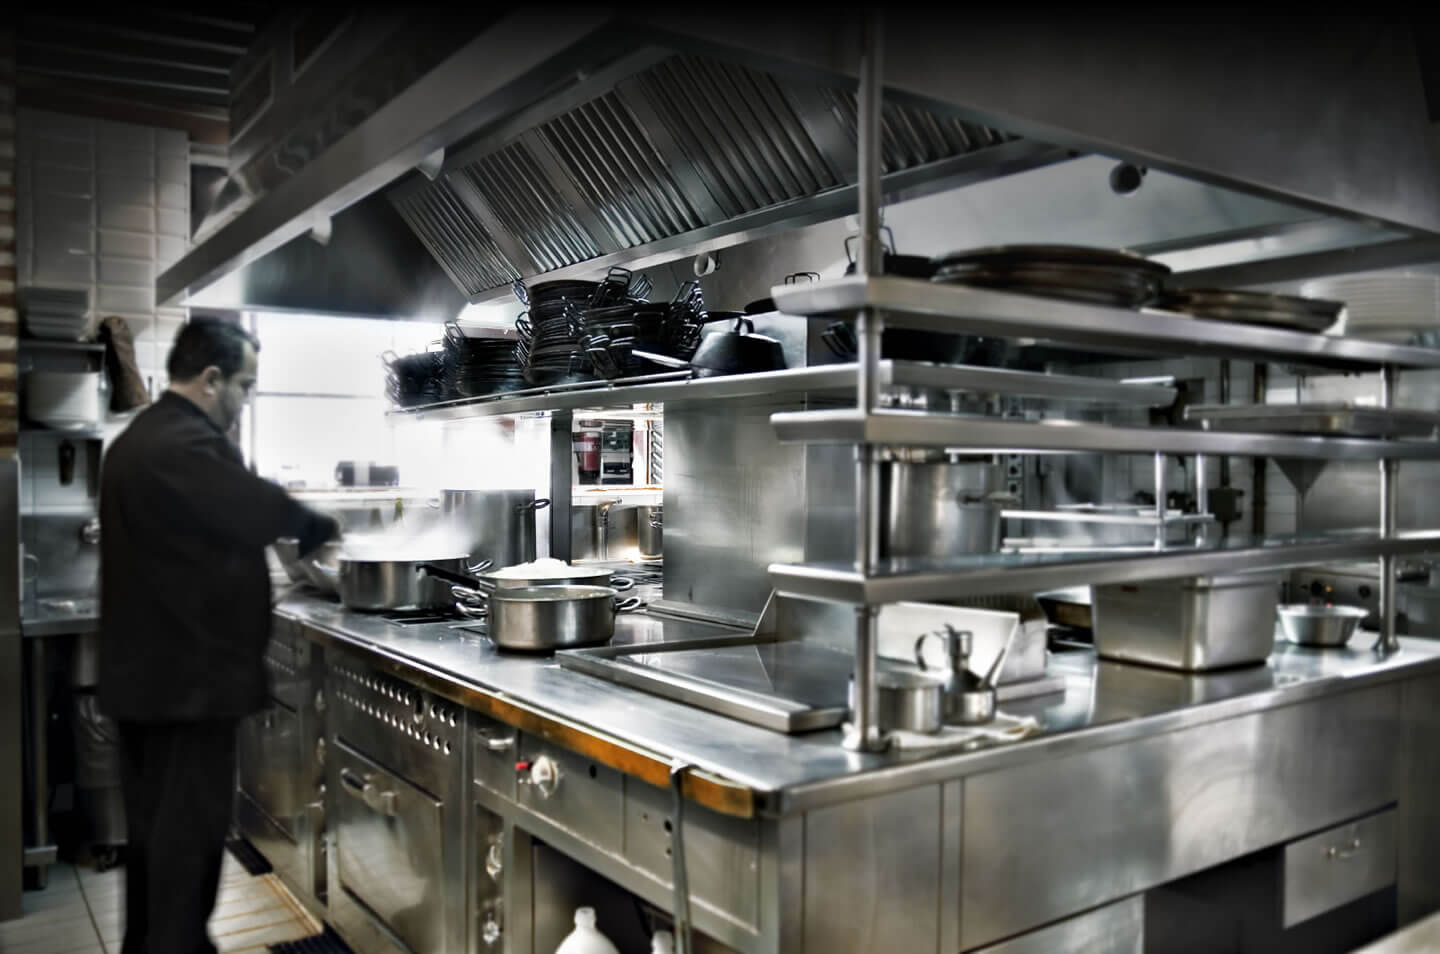 Restaurant Hood Cleaning - Kitchen Exhaust Cleaners in Riverside, Palm Springs, San Bernardino, Redlands, and Southern California Area